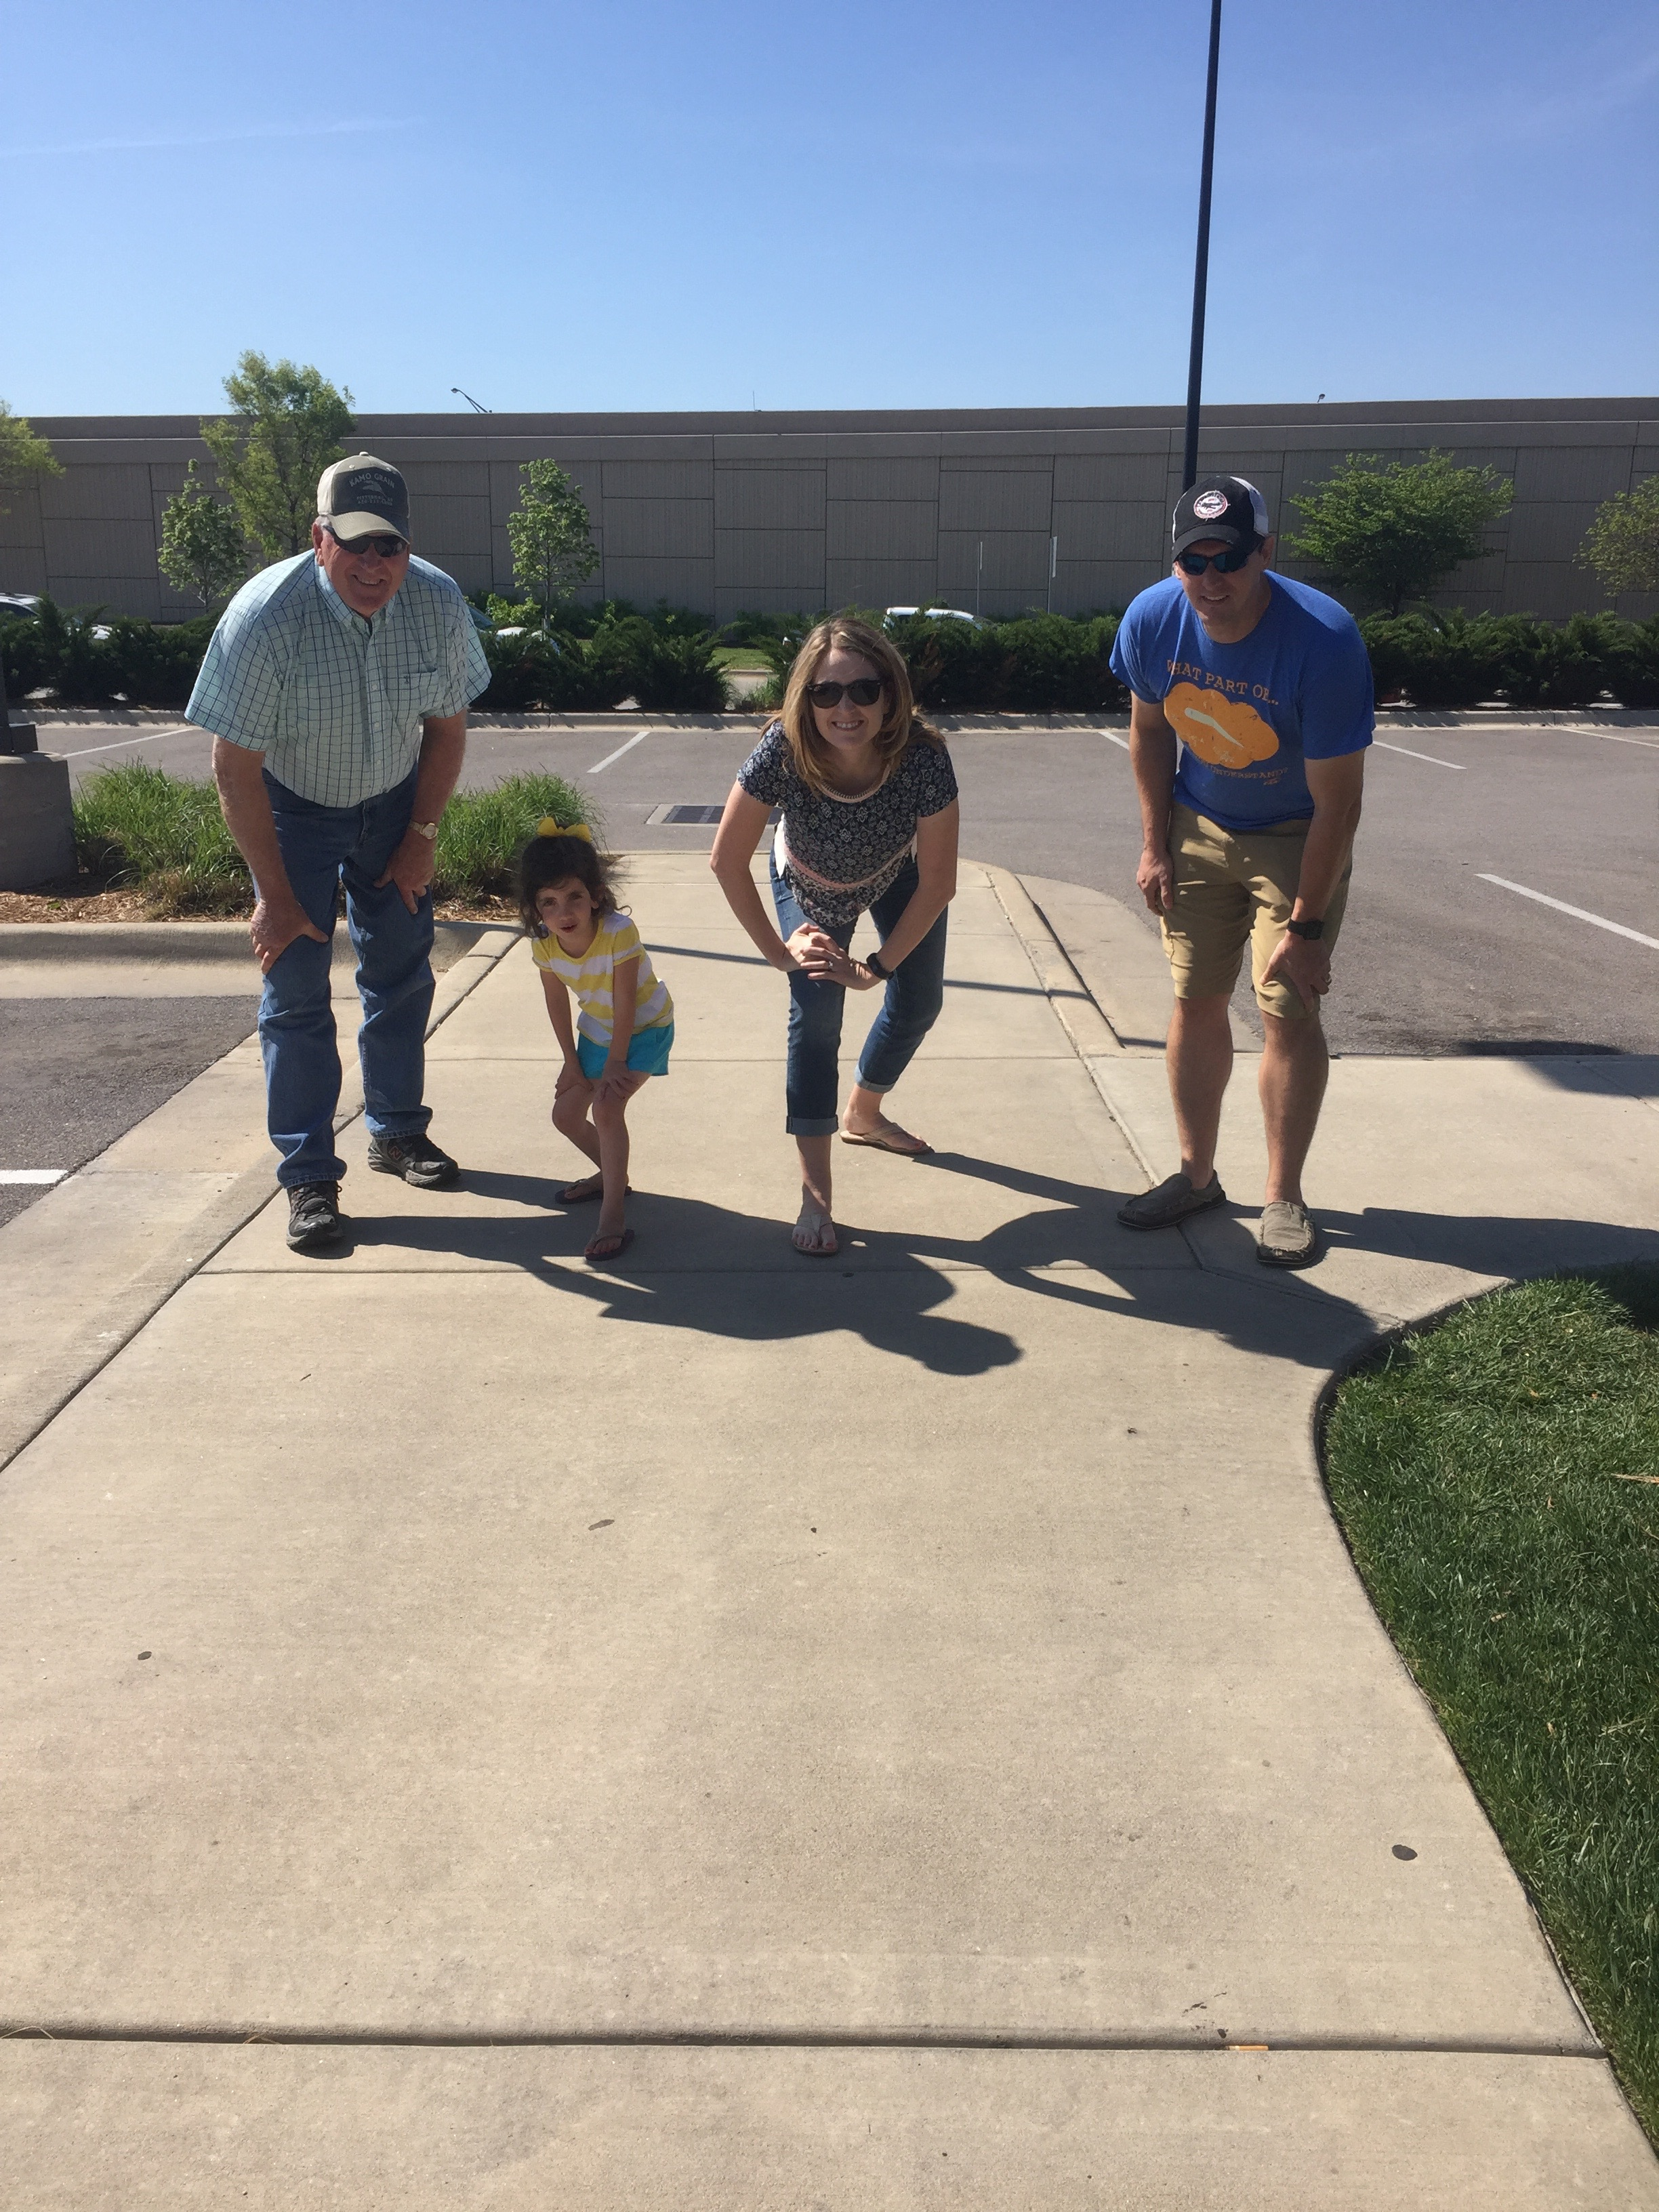 Longhorn wasn't open yet, so Special K entertained everyone by making them do footraces.